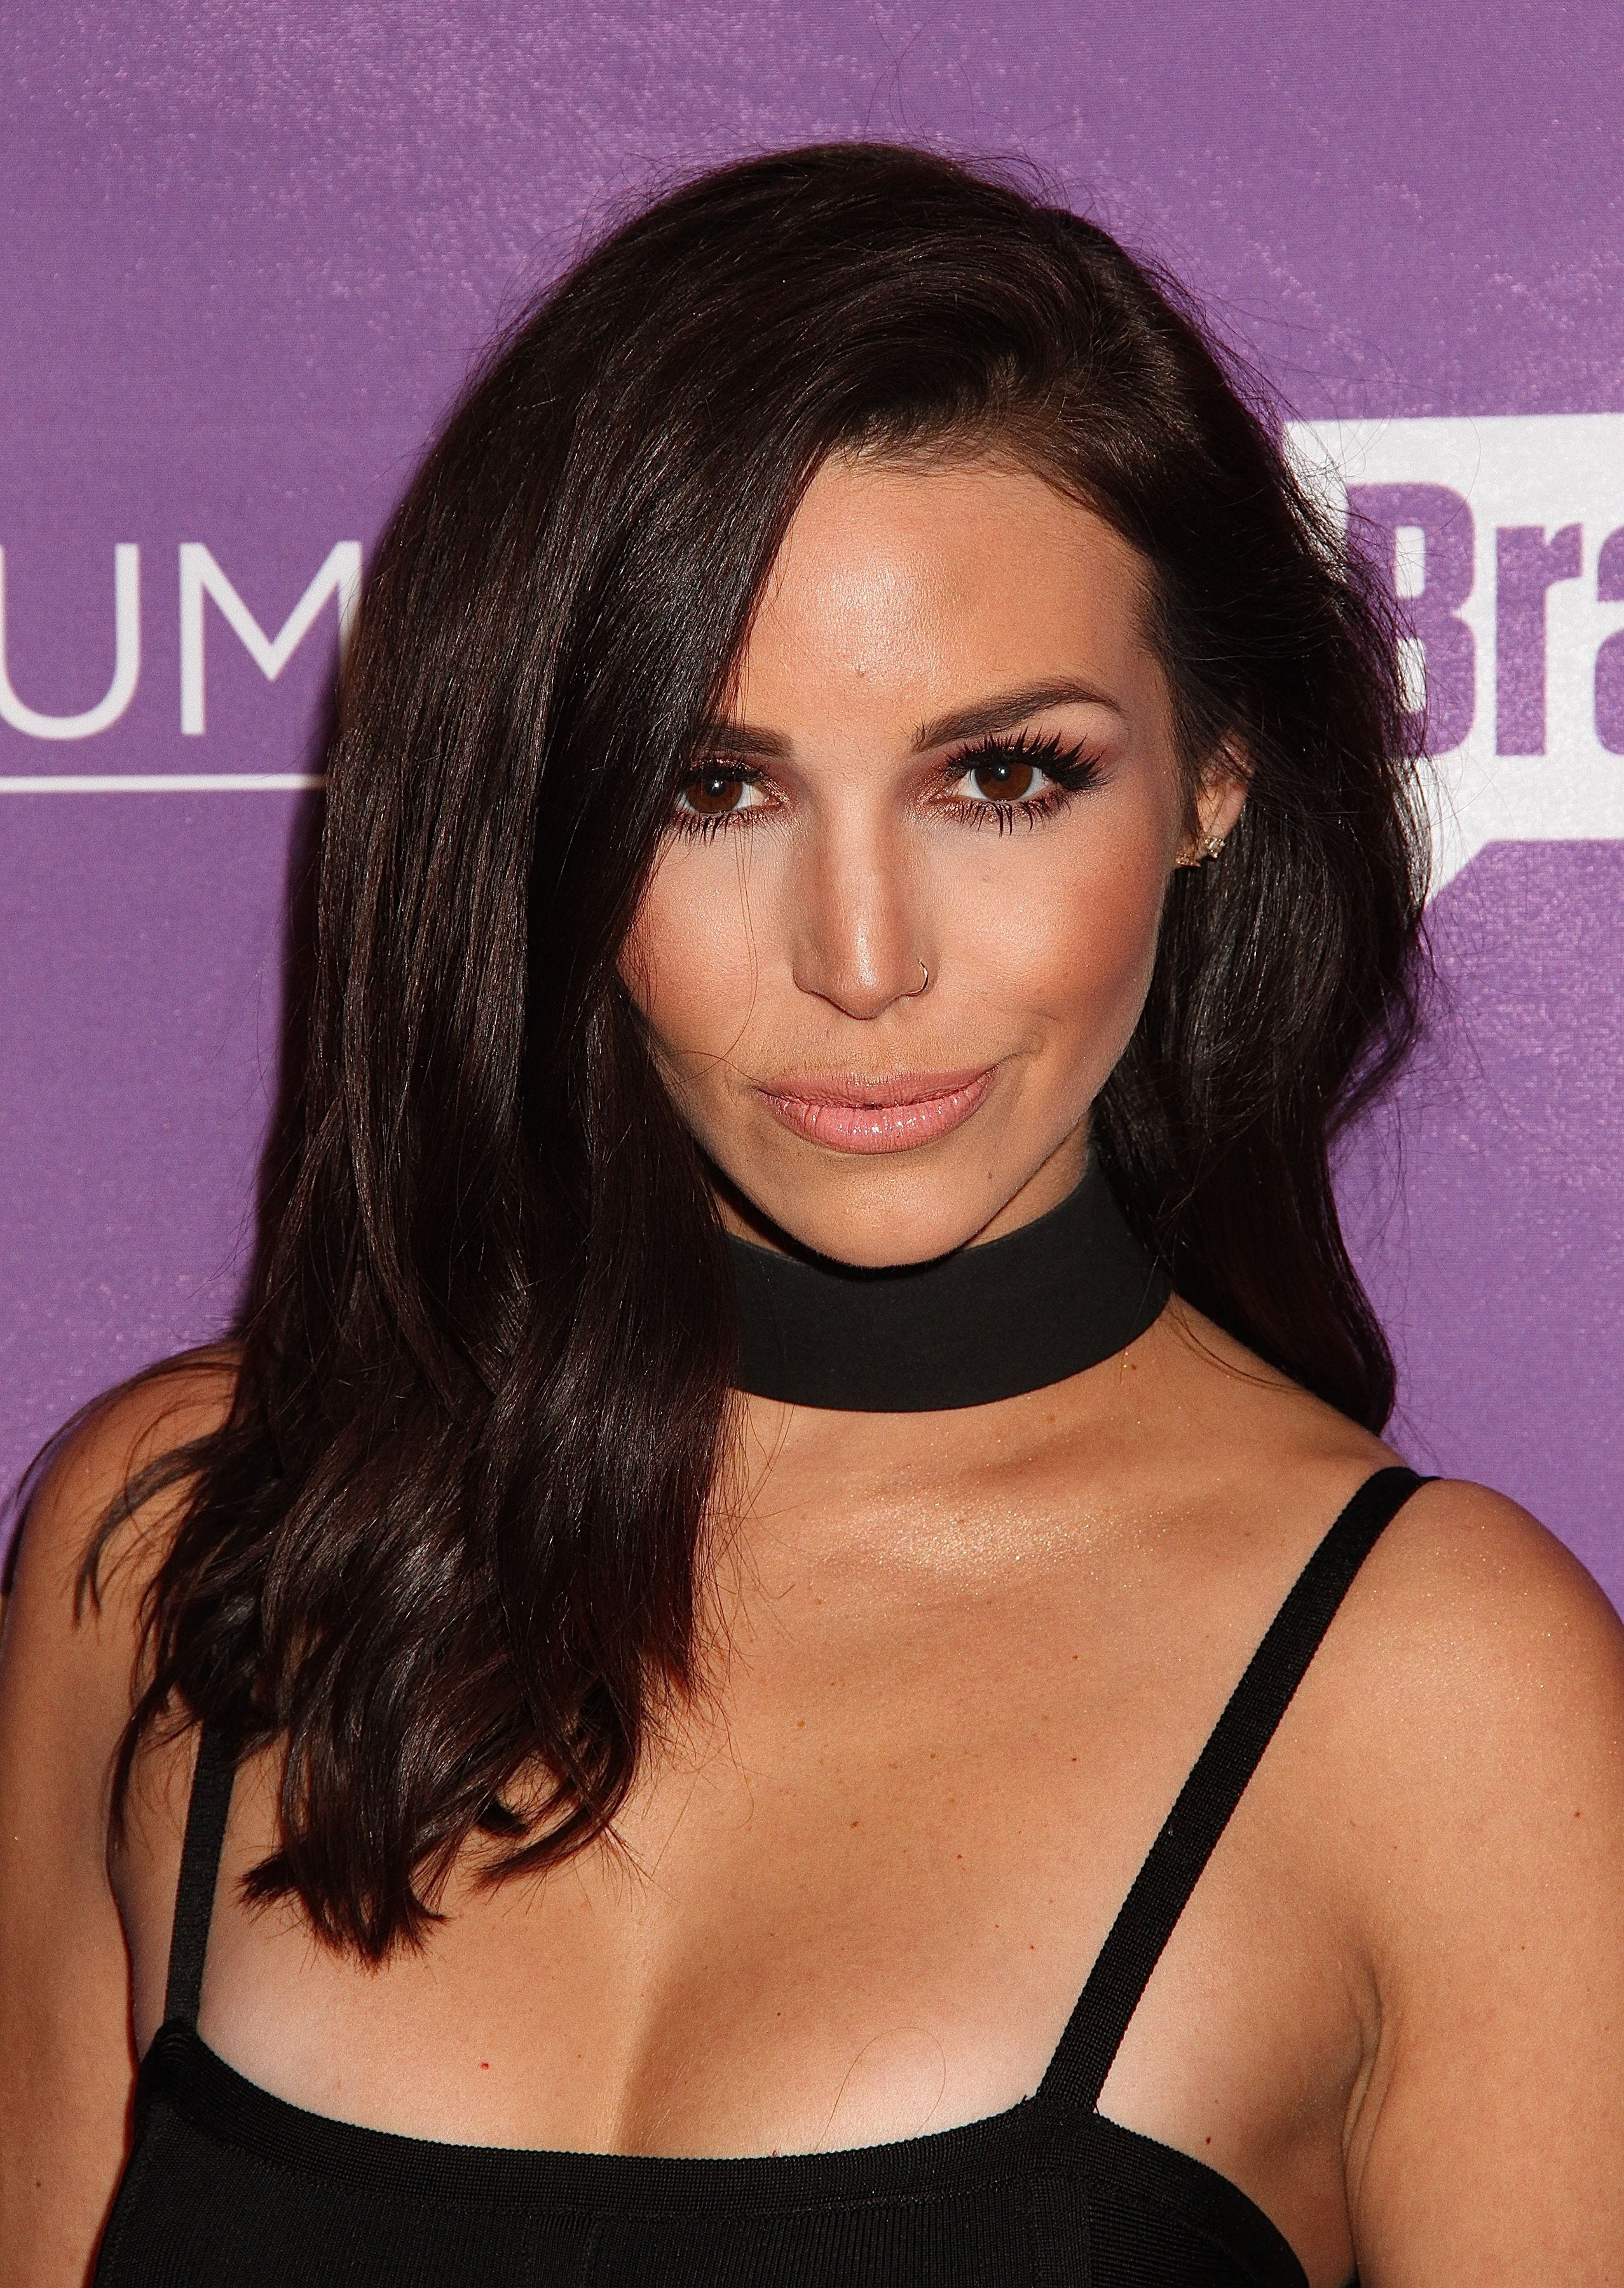 who is scheana dating 2017